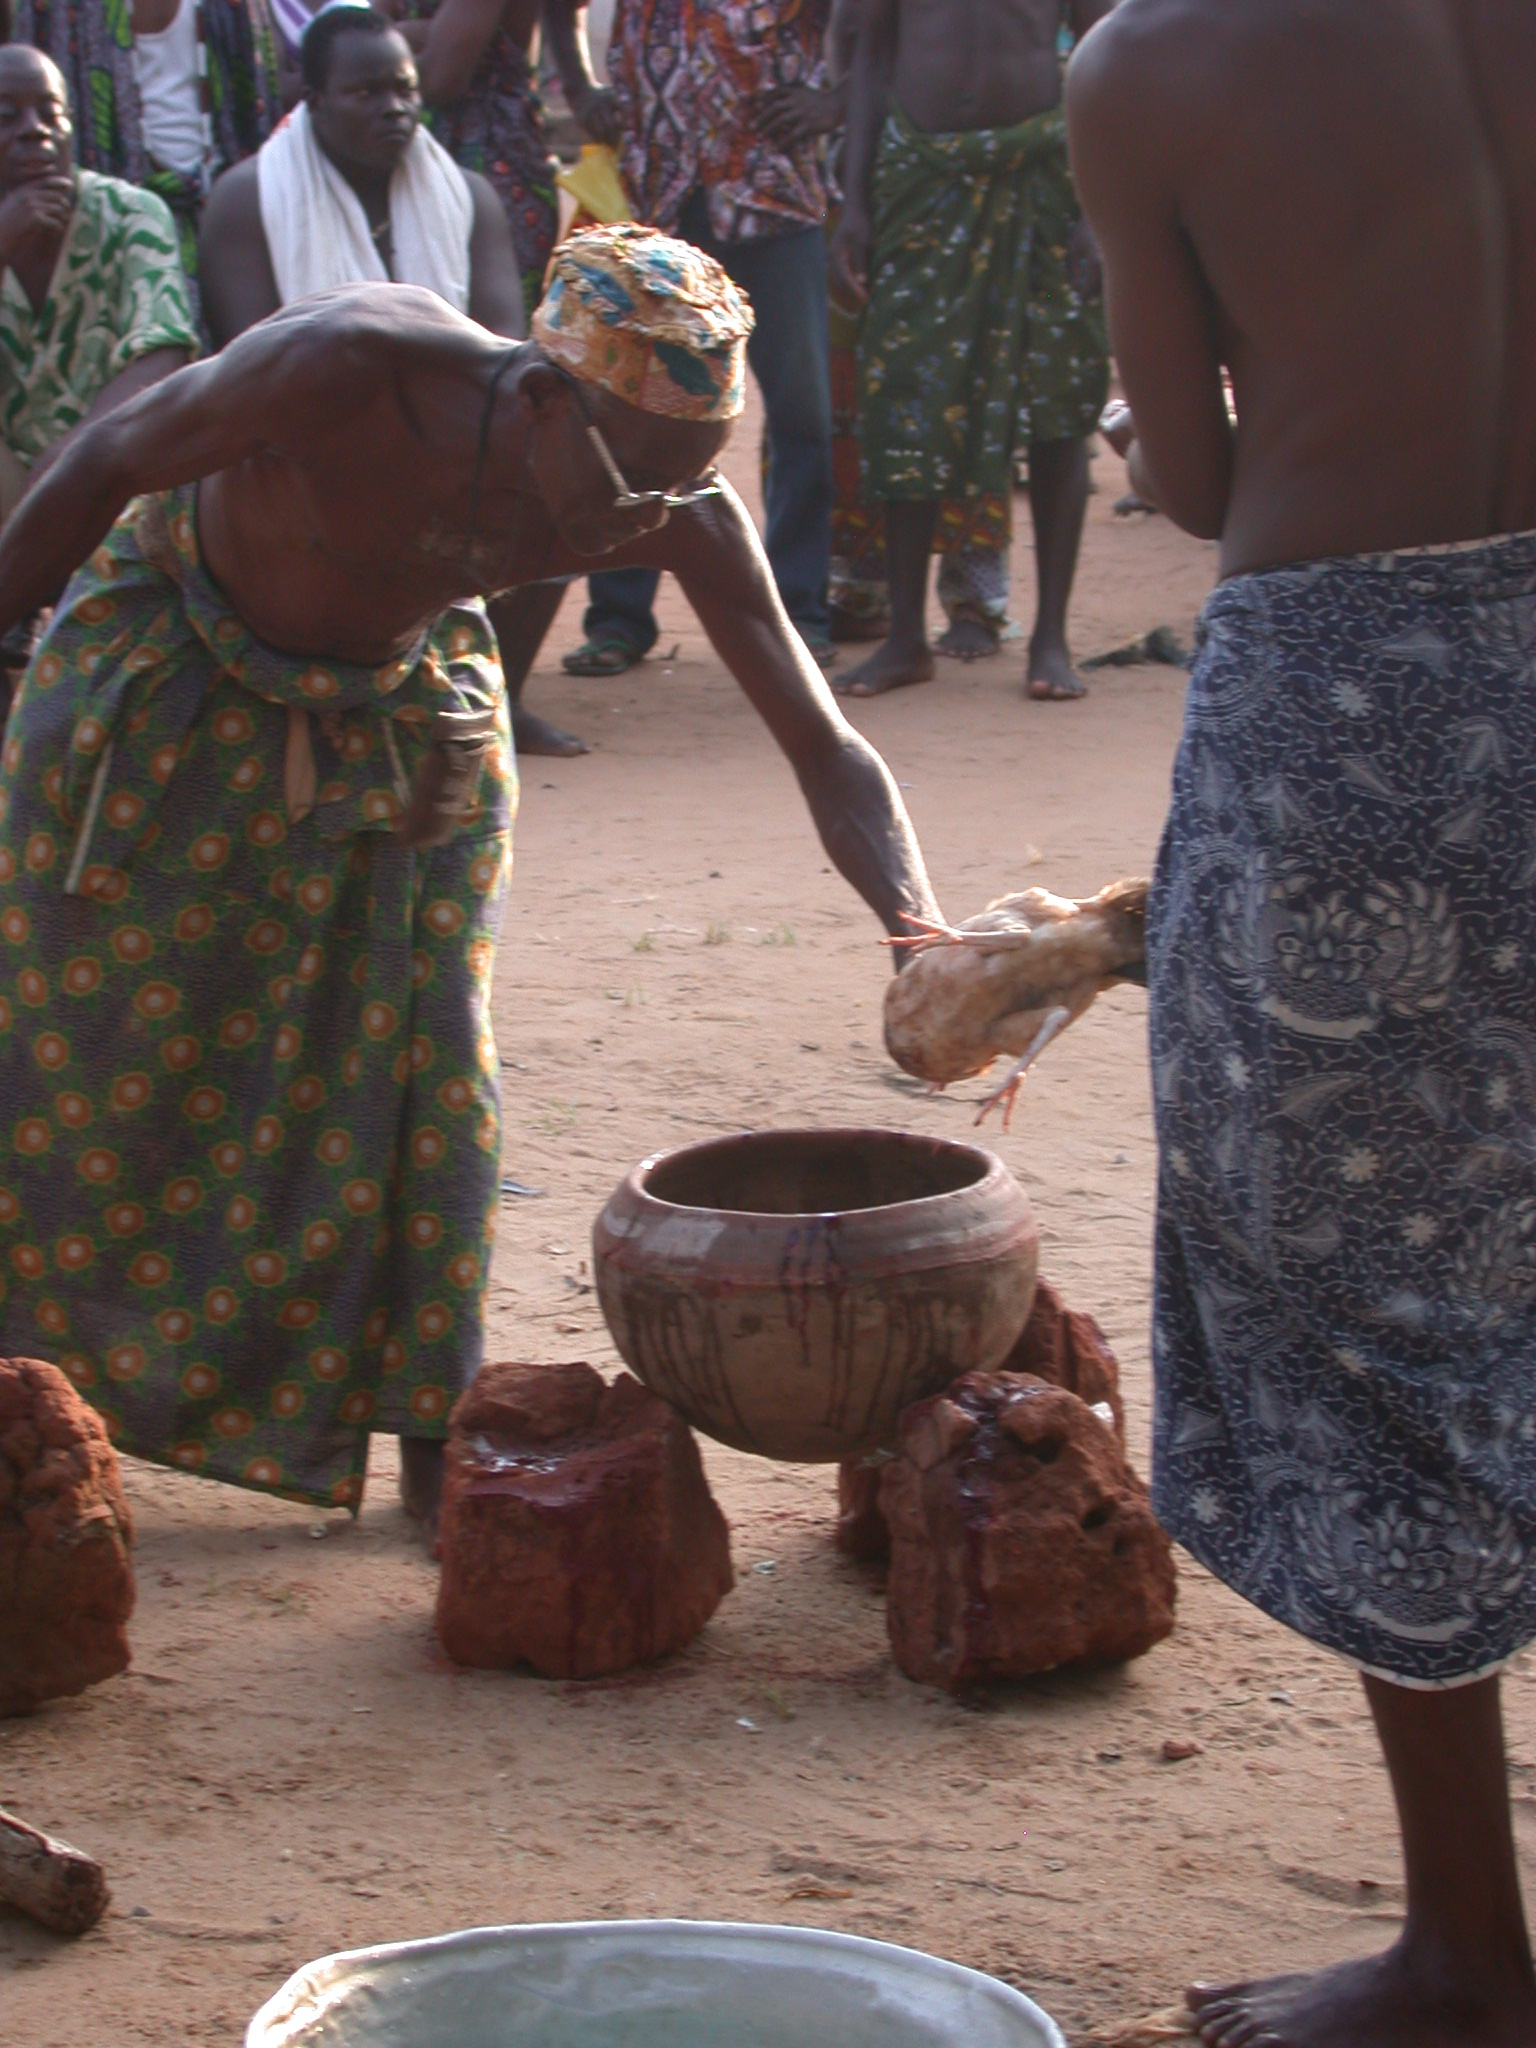 Sacrificing a Chicken, Vodun Ritual, Ouidah, Benin